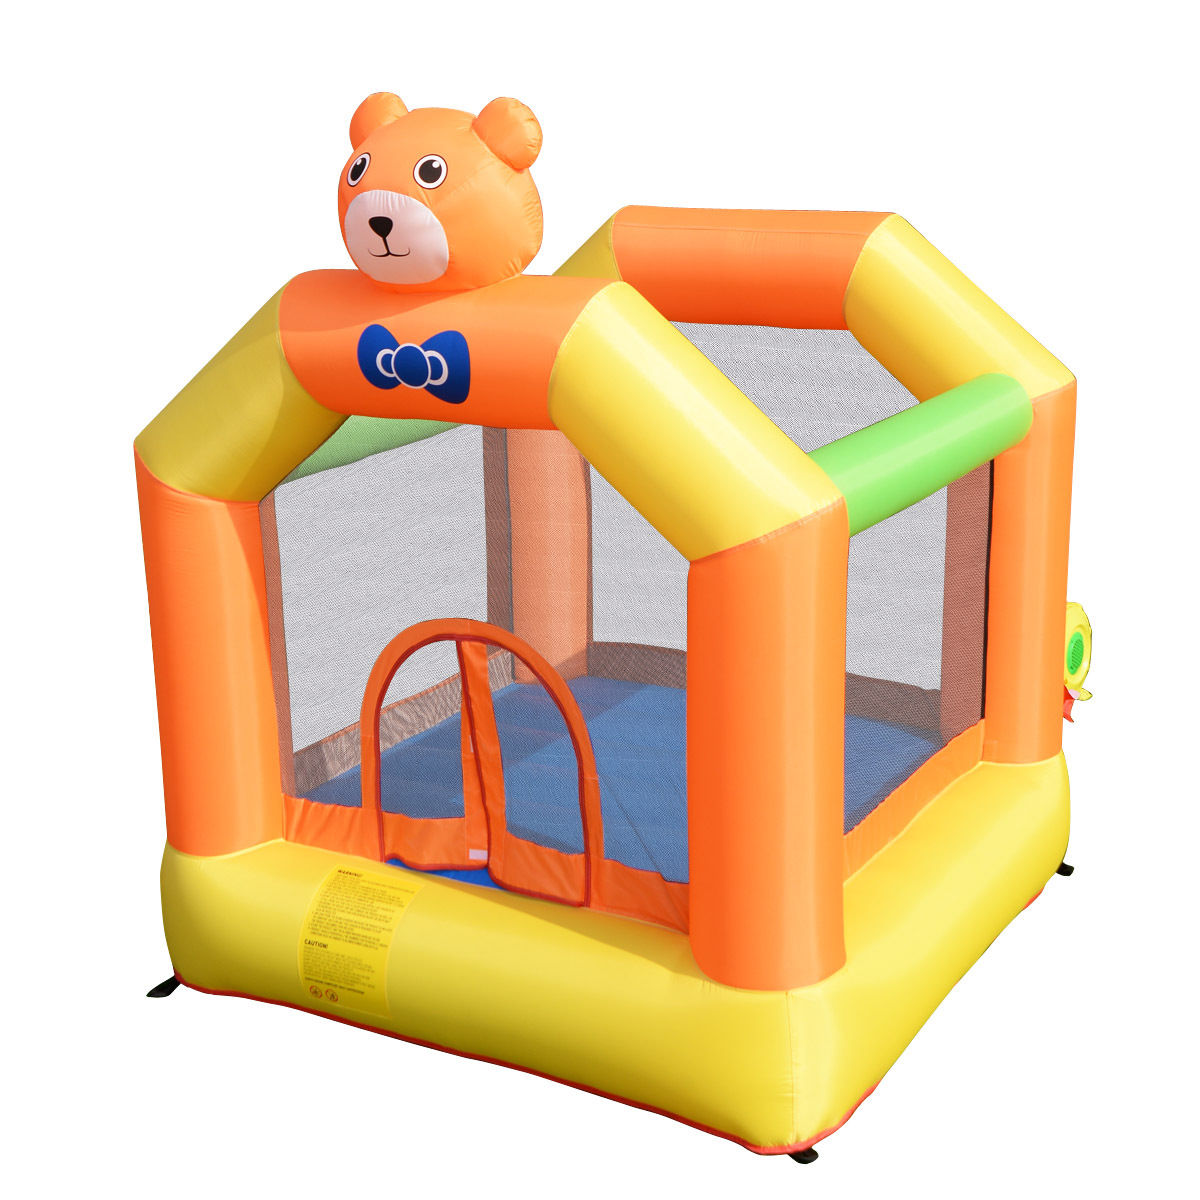 Costway Inflatable Little Bear Bounce House Jumper Moonwalk Outdoor Kids Without Blower